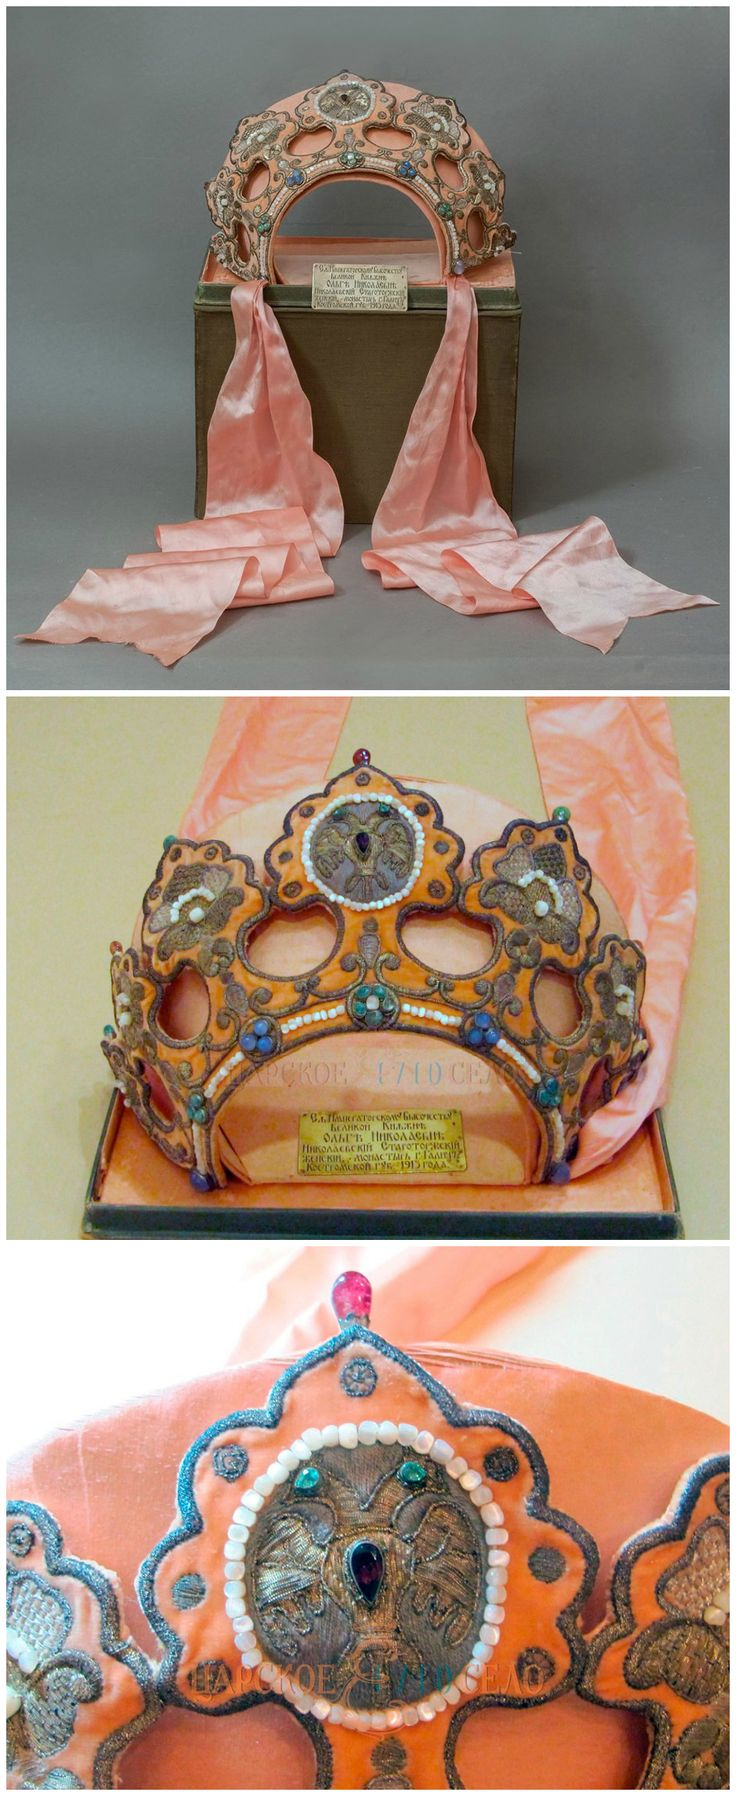 Kokoshnik belonging to Grand Duchess Olga Nikolaevna, 1913, Tsarskoye Selo State Museum-Preserve. Commissioned to mark the 300th anniversary of the Romanov dynasty in 1913, the kokoshnik was hand-made by nuns of the Starotorzhsk convent of St Nicholas in Kostroma province. It is covered with peach velvet. The exterior, embroidered with silk and silver threads and decorated with mother-of-pearl and semi-precious stones, bears at the center an image of the double-headed imperial eagle.